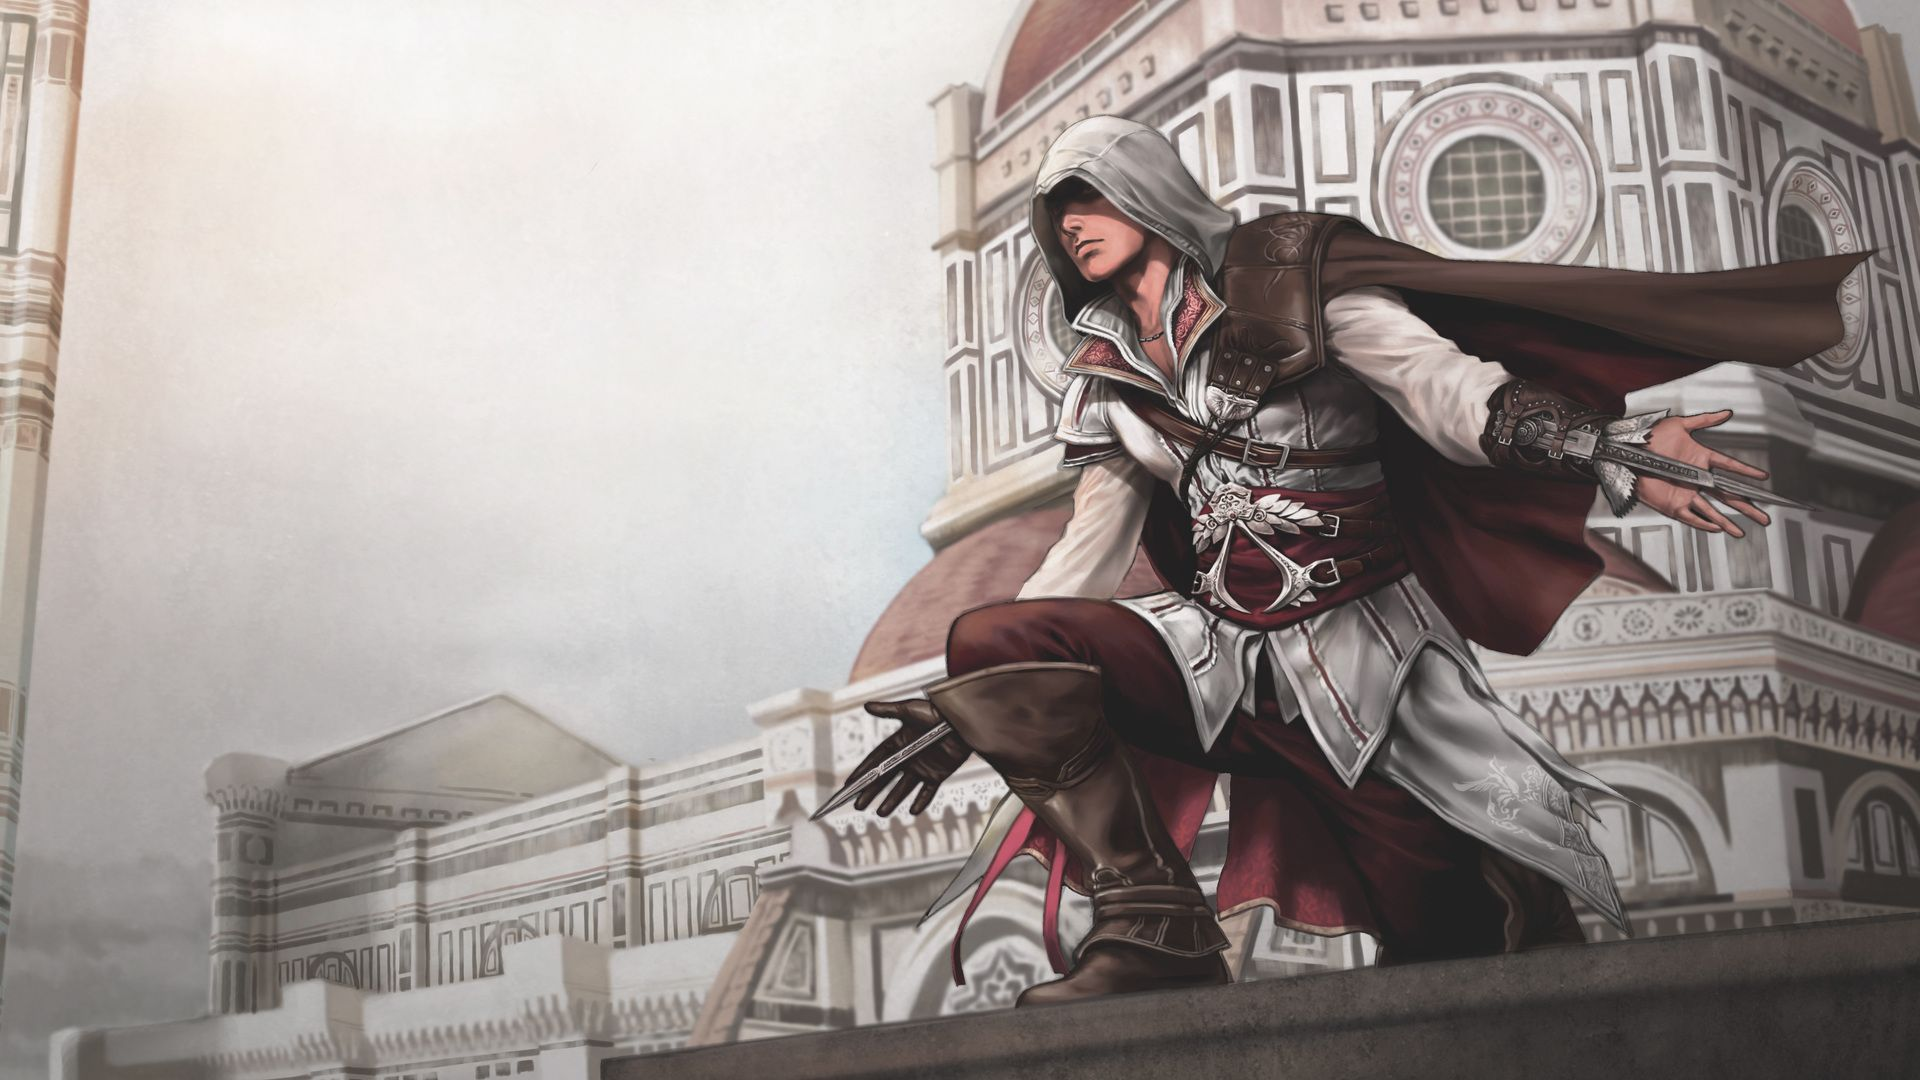 2 Assassins Creed Images, Wallpaper